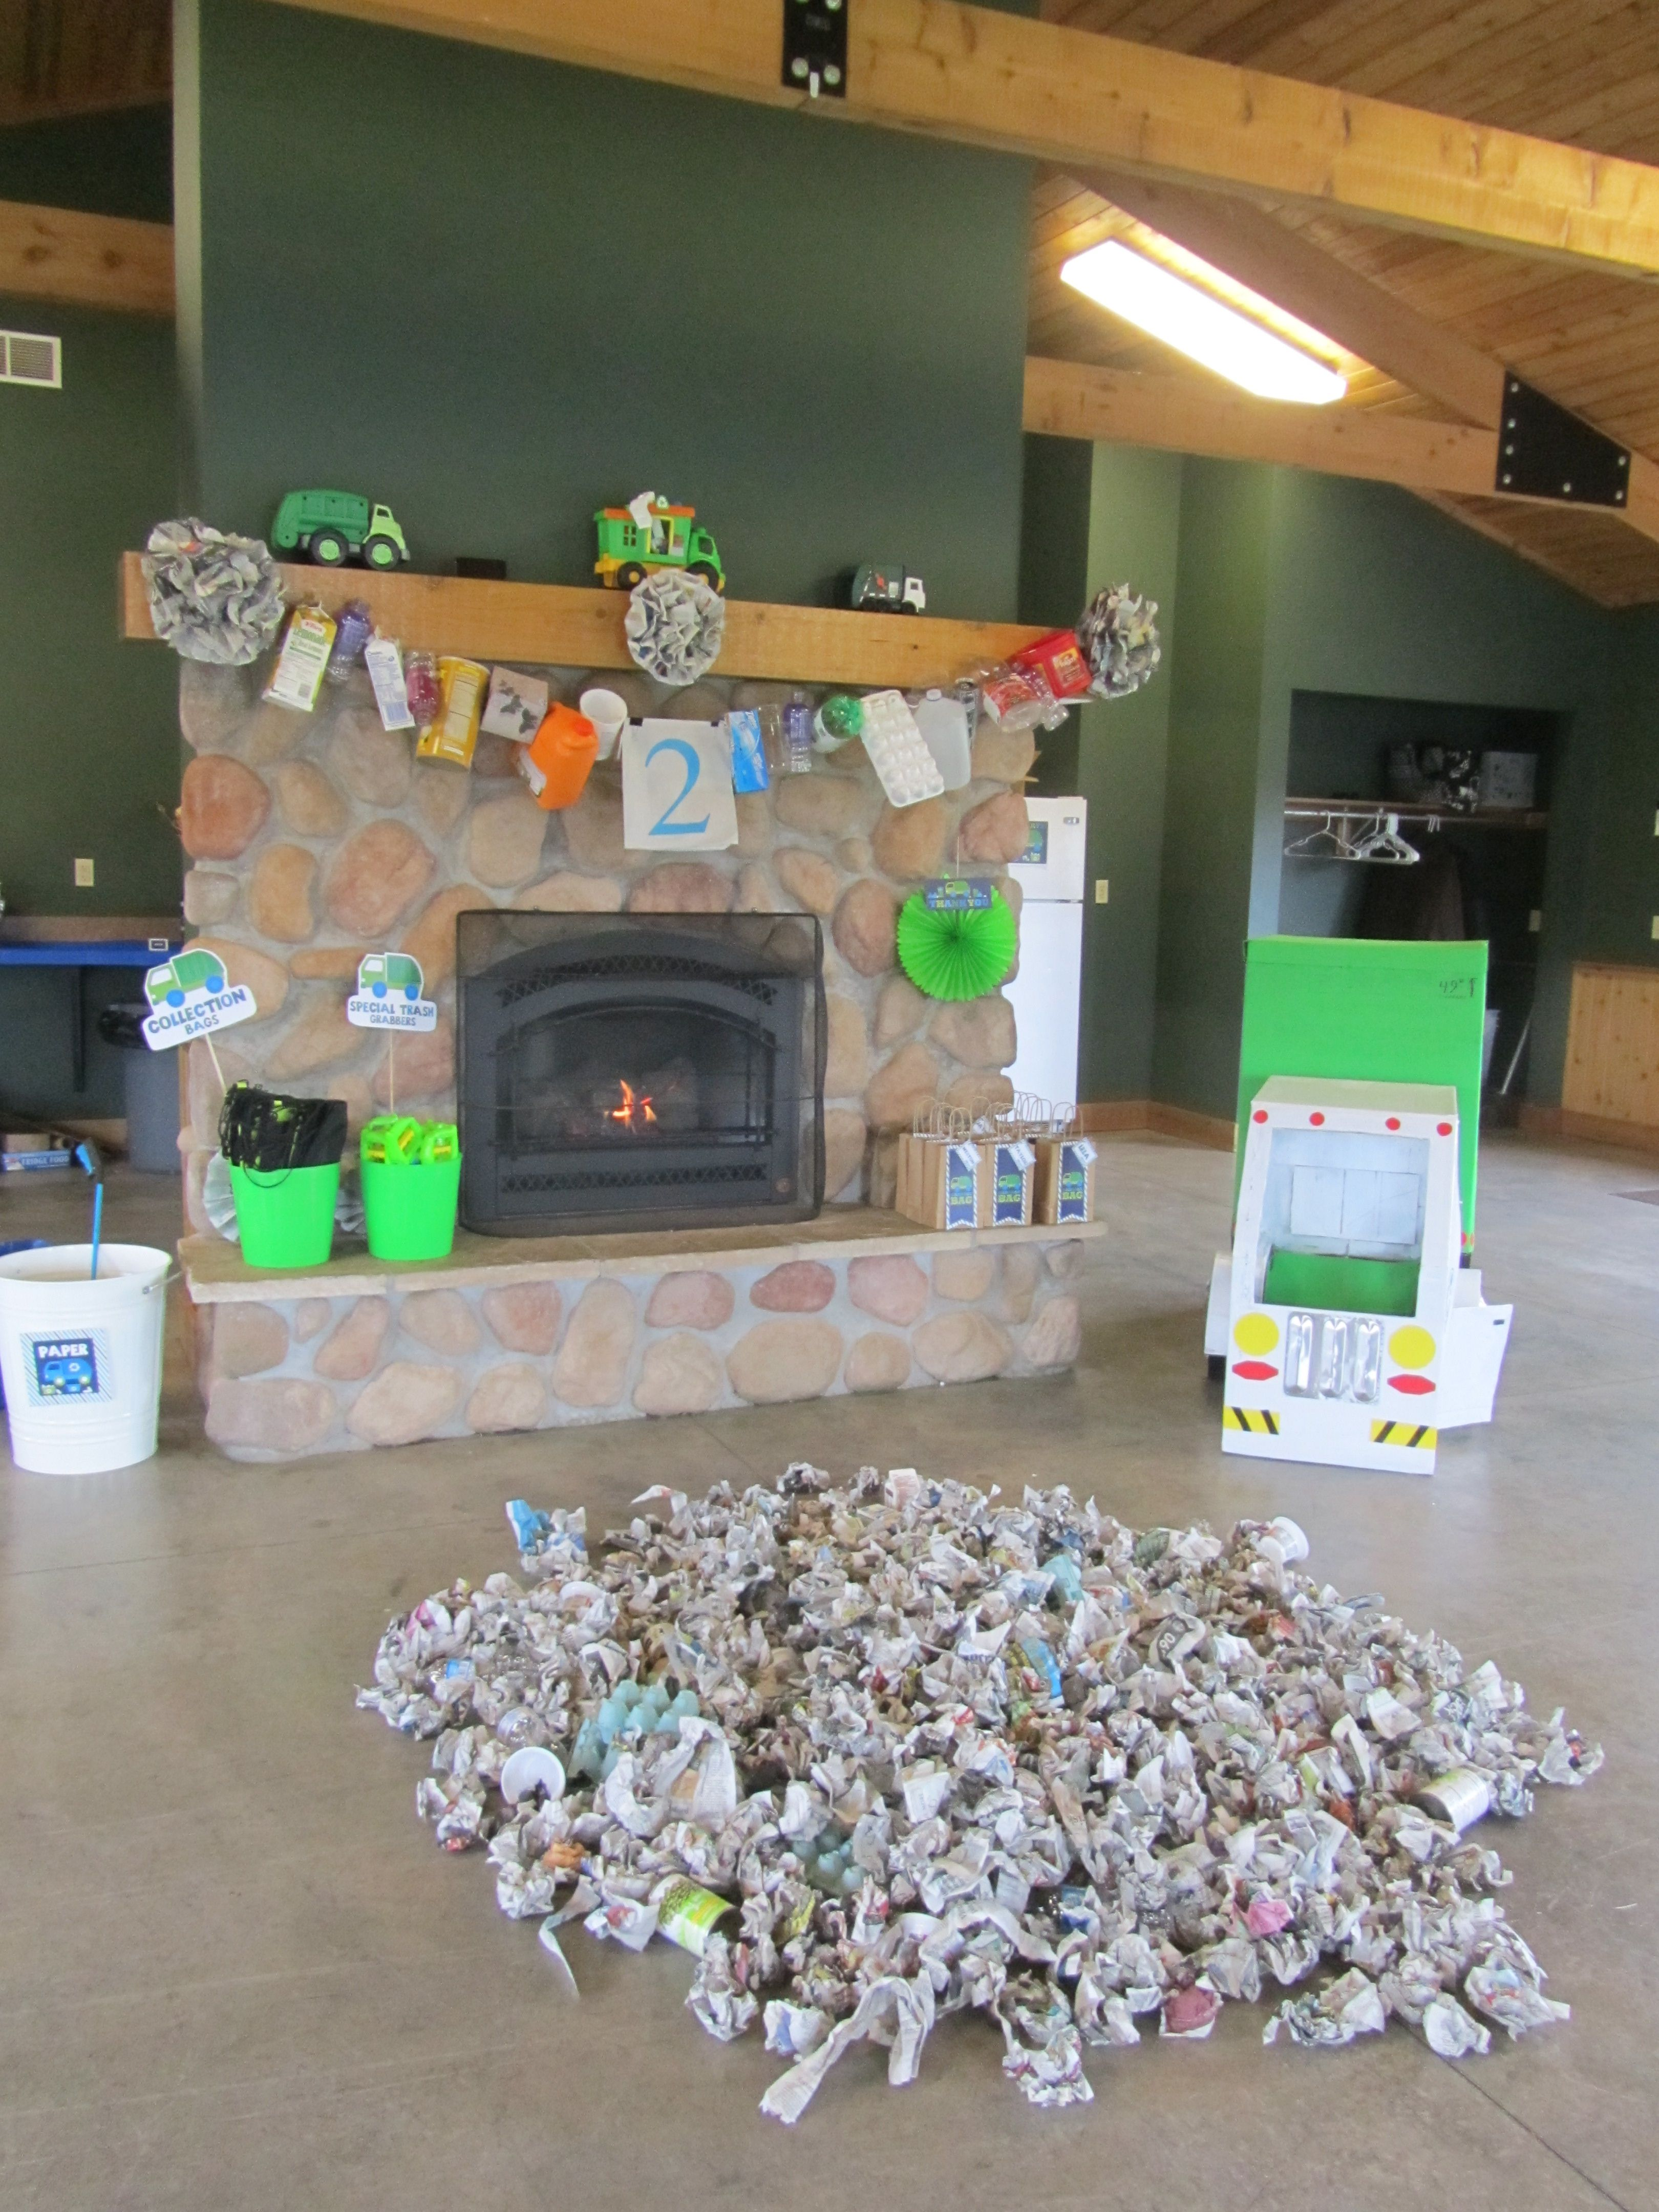 Decorations For Garbage Truck Party Love The Recyclable